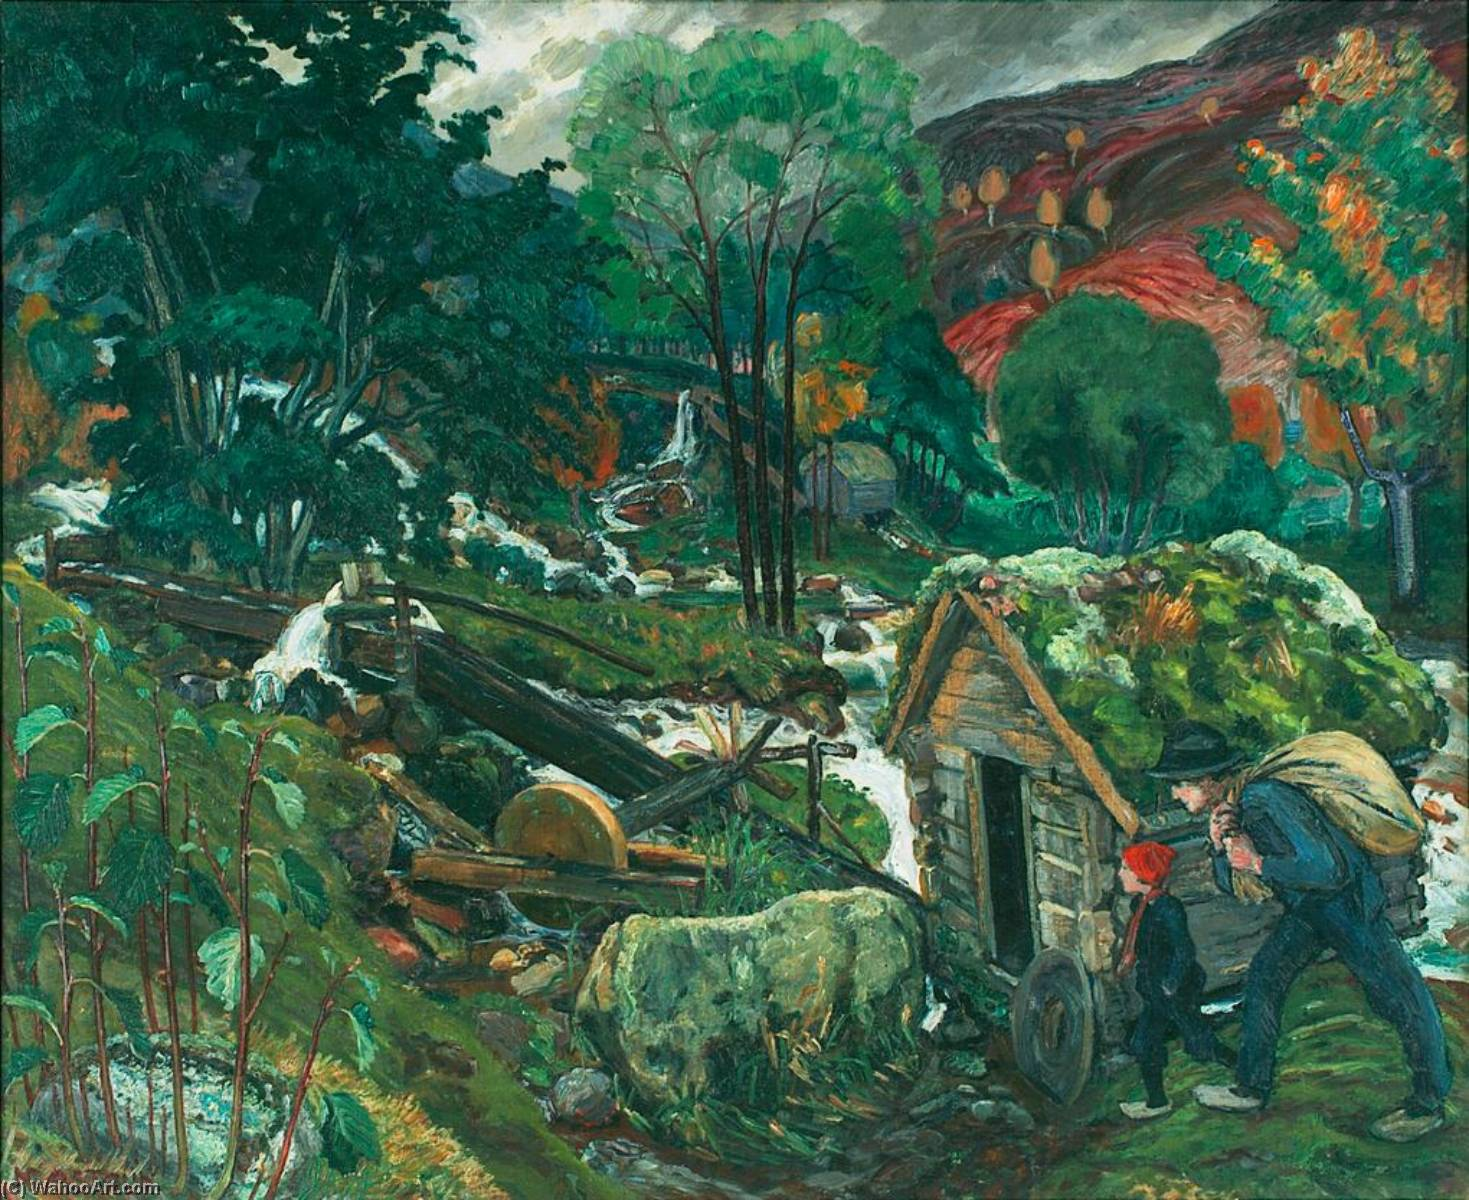 Mill Water, Oil On Canvas by Nikolai Astrup (1880-1928)